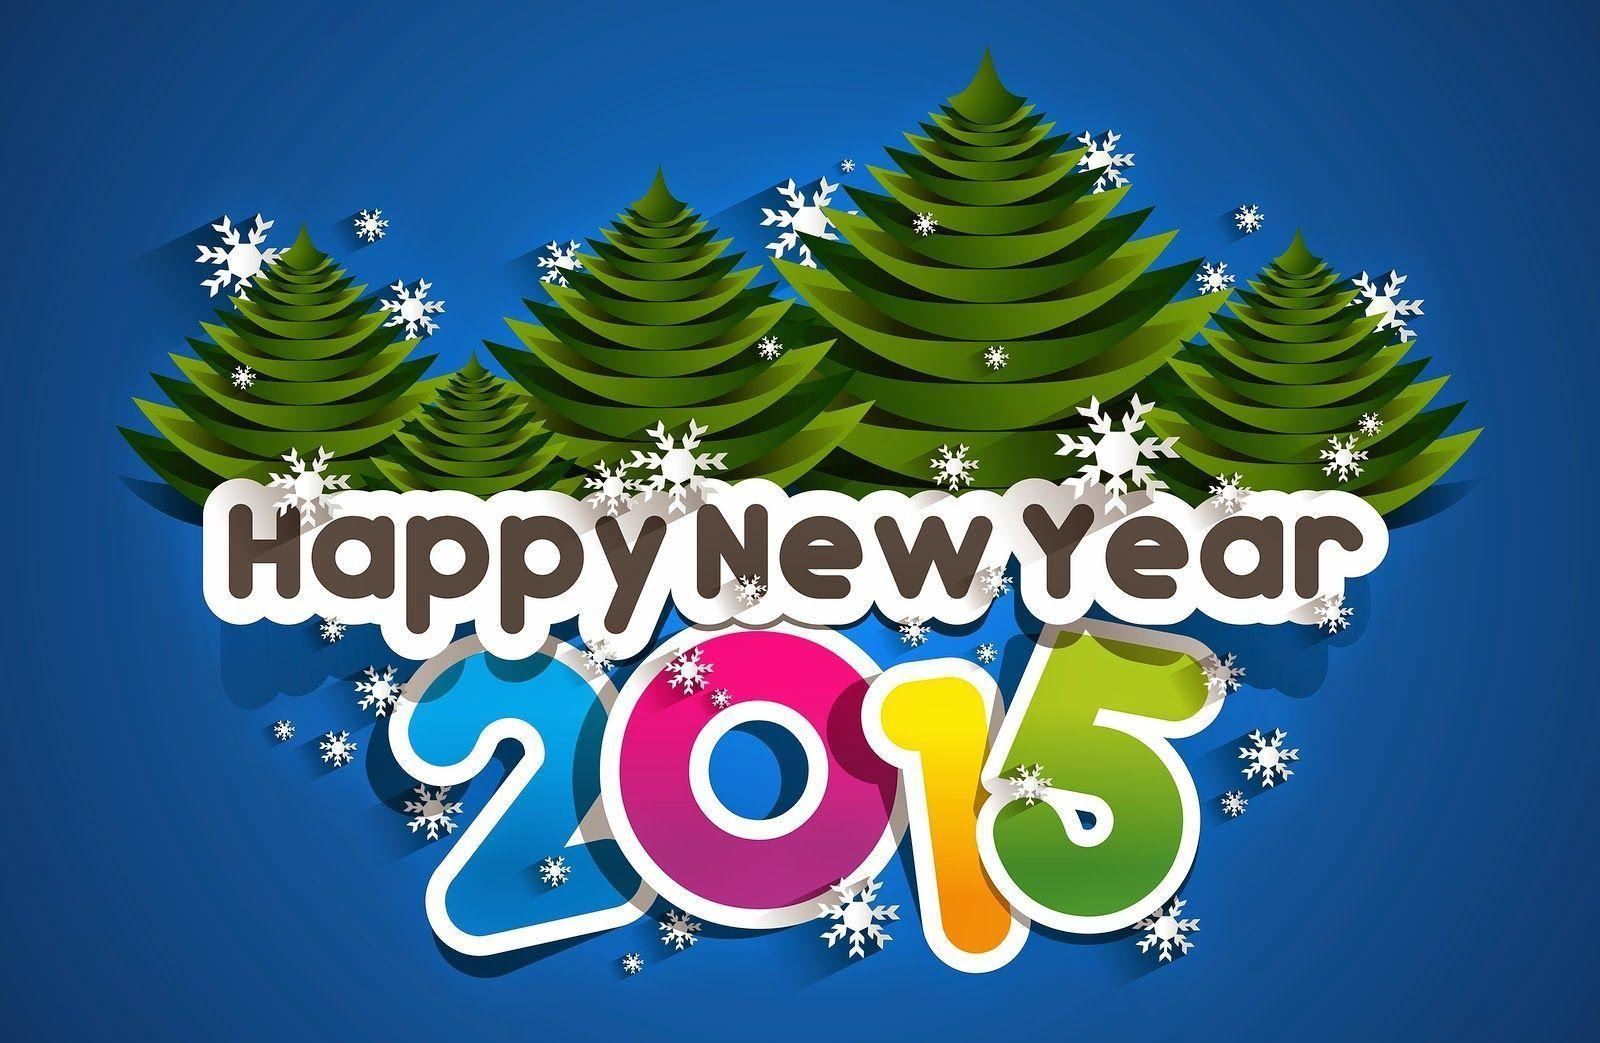 Happy New Year 2015 Wallpapers Free Wallpaper Cave